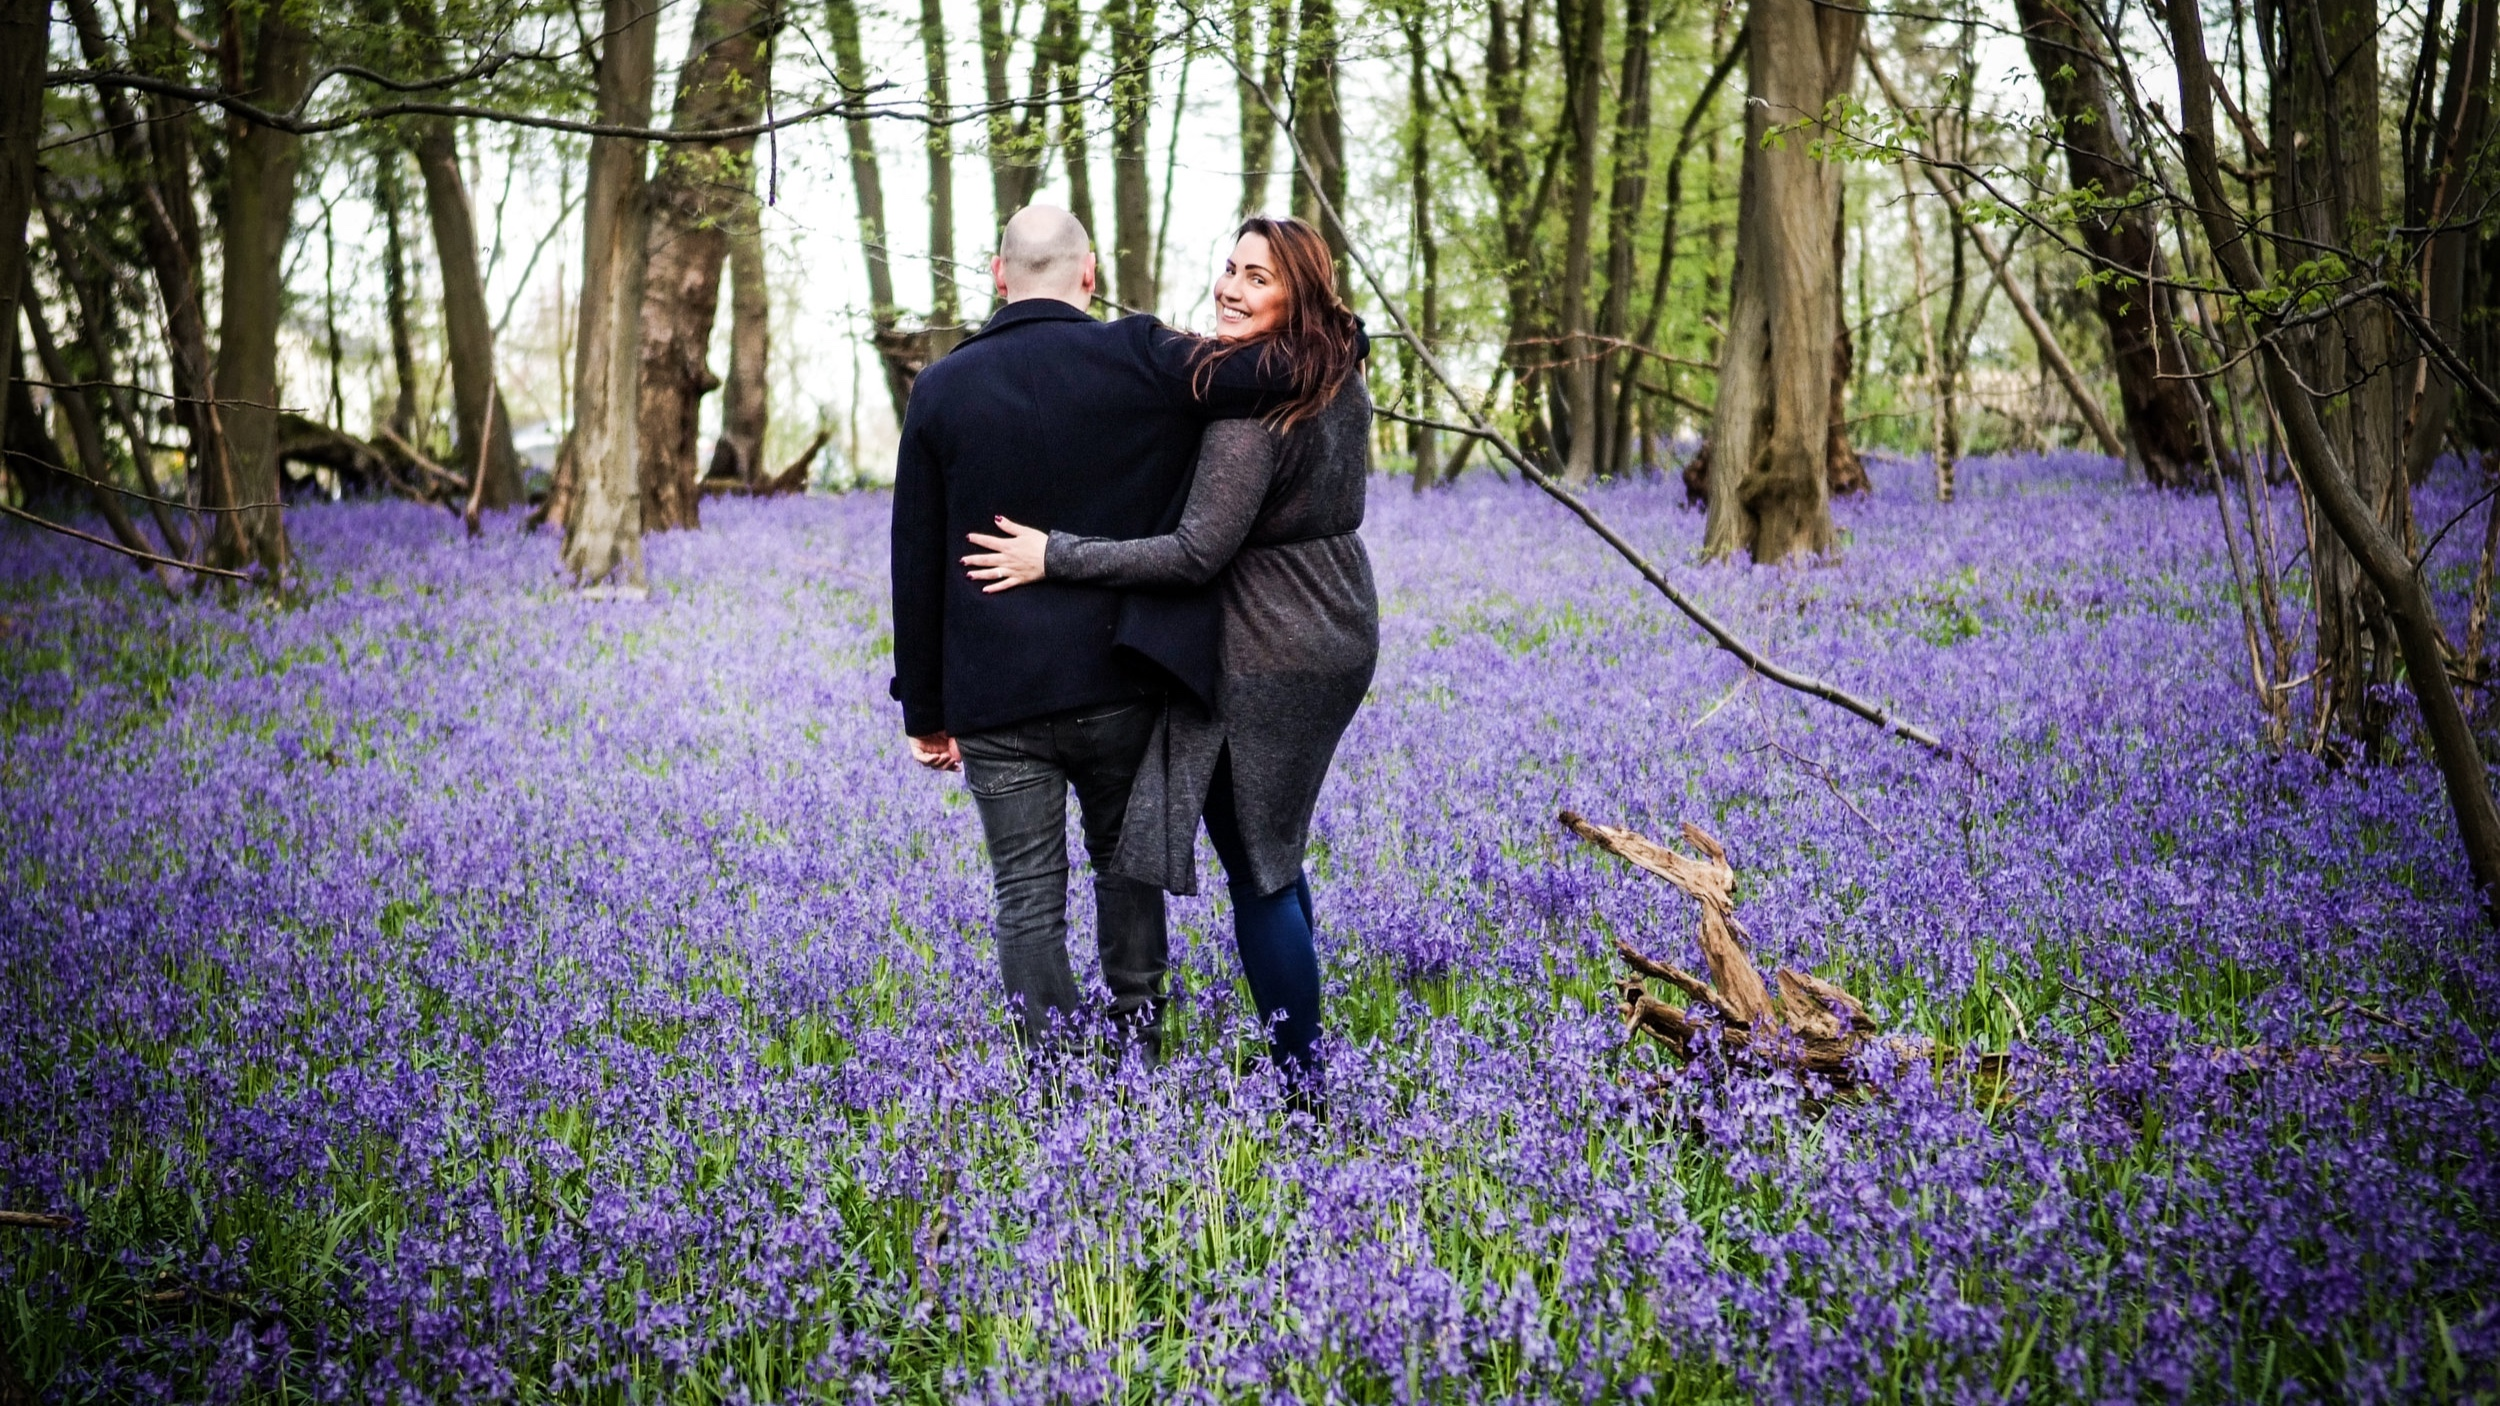 Engagement+photoshoot+photography+by+photographer+in+St+Albans+Herts.+outdoor+pictures+of+couple-9.jpg